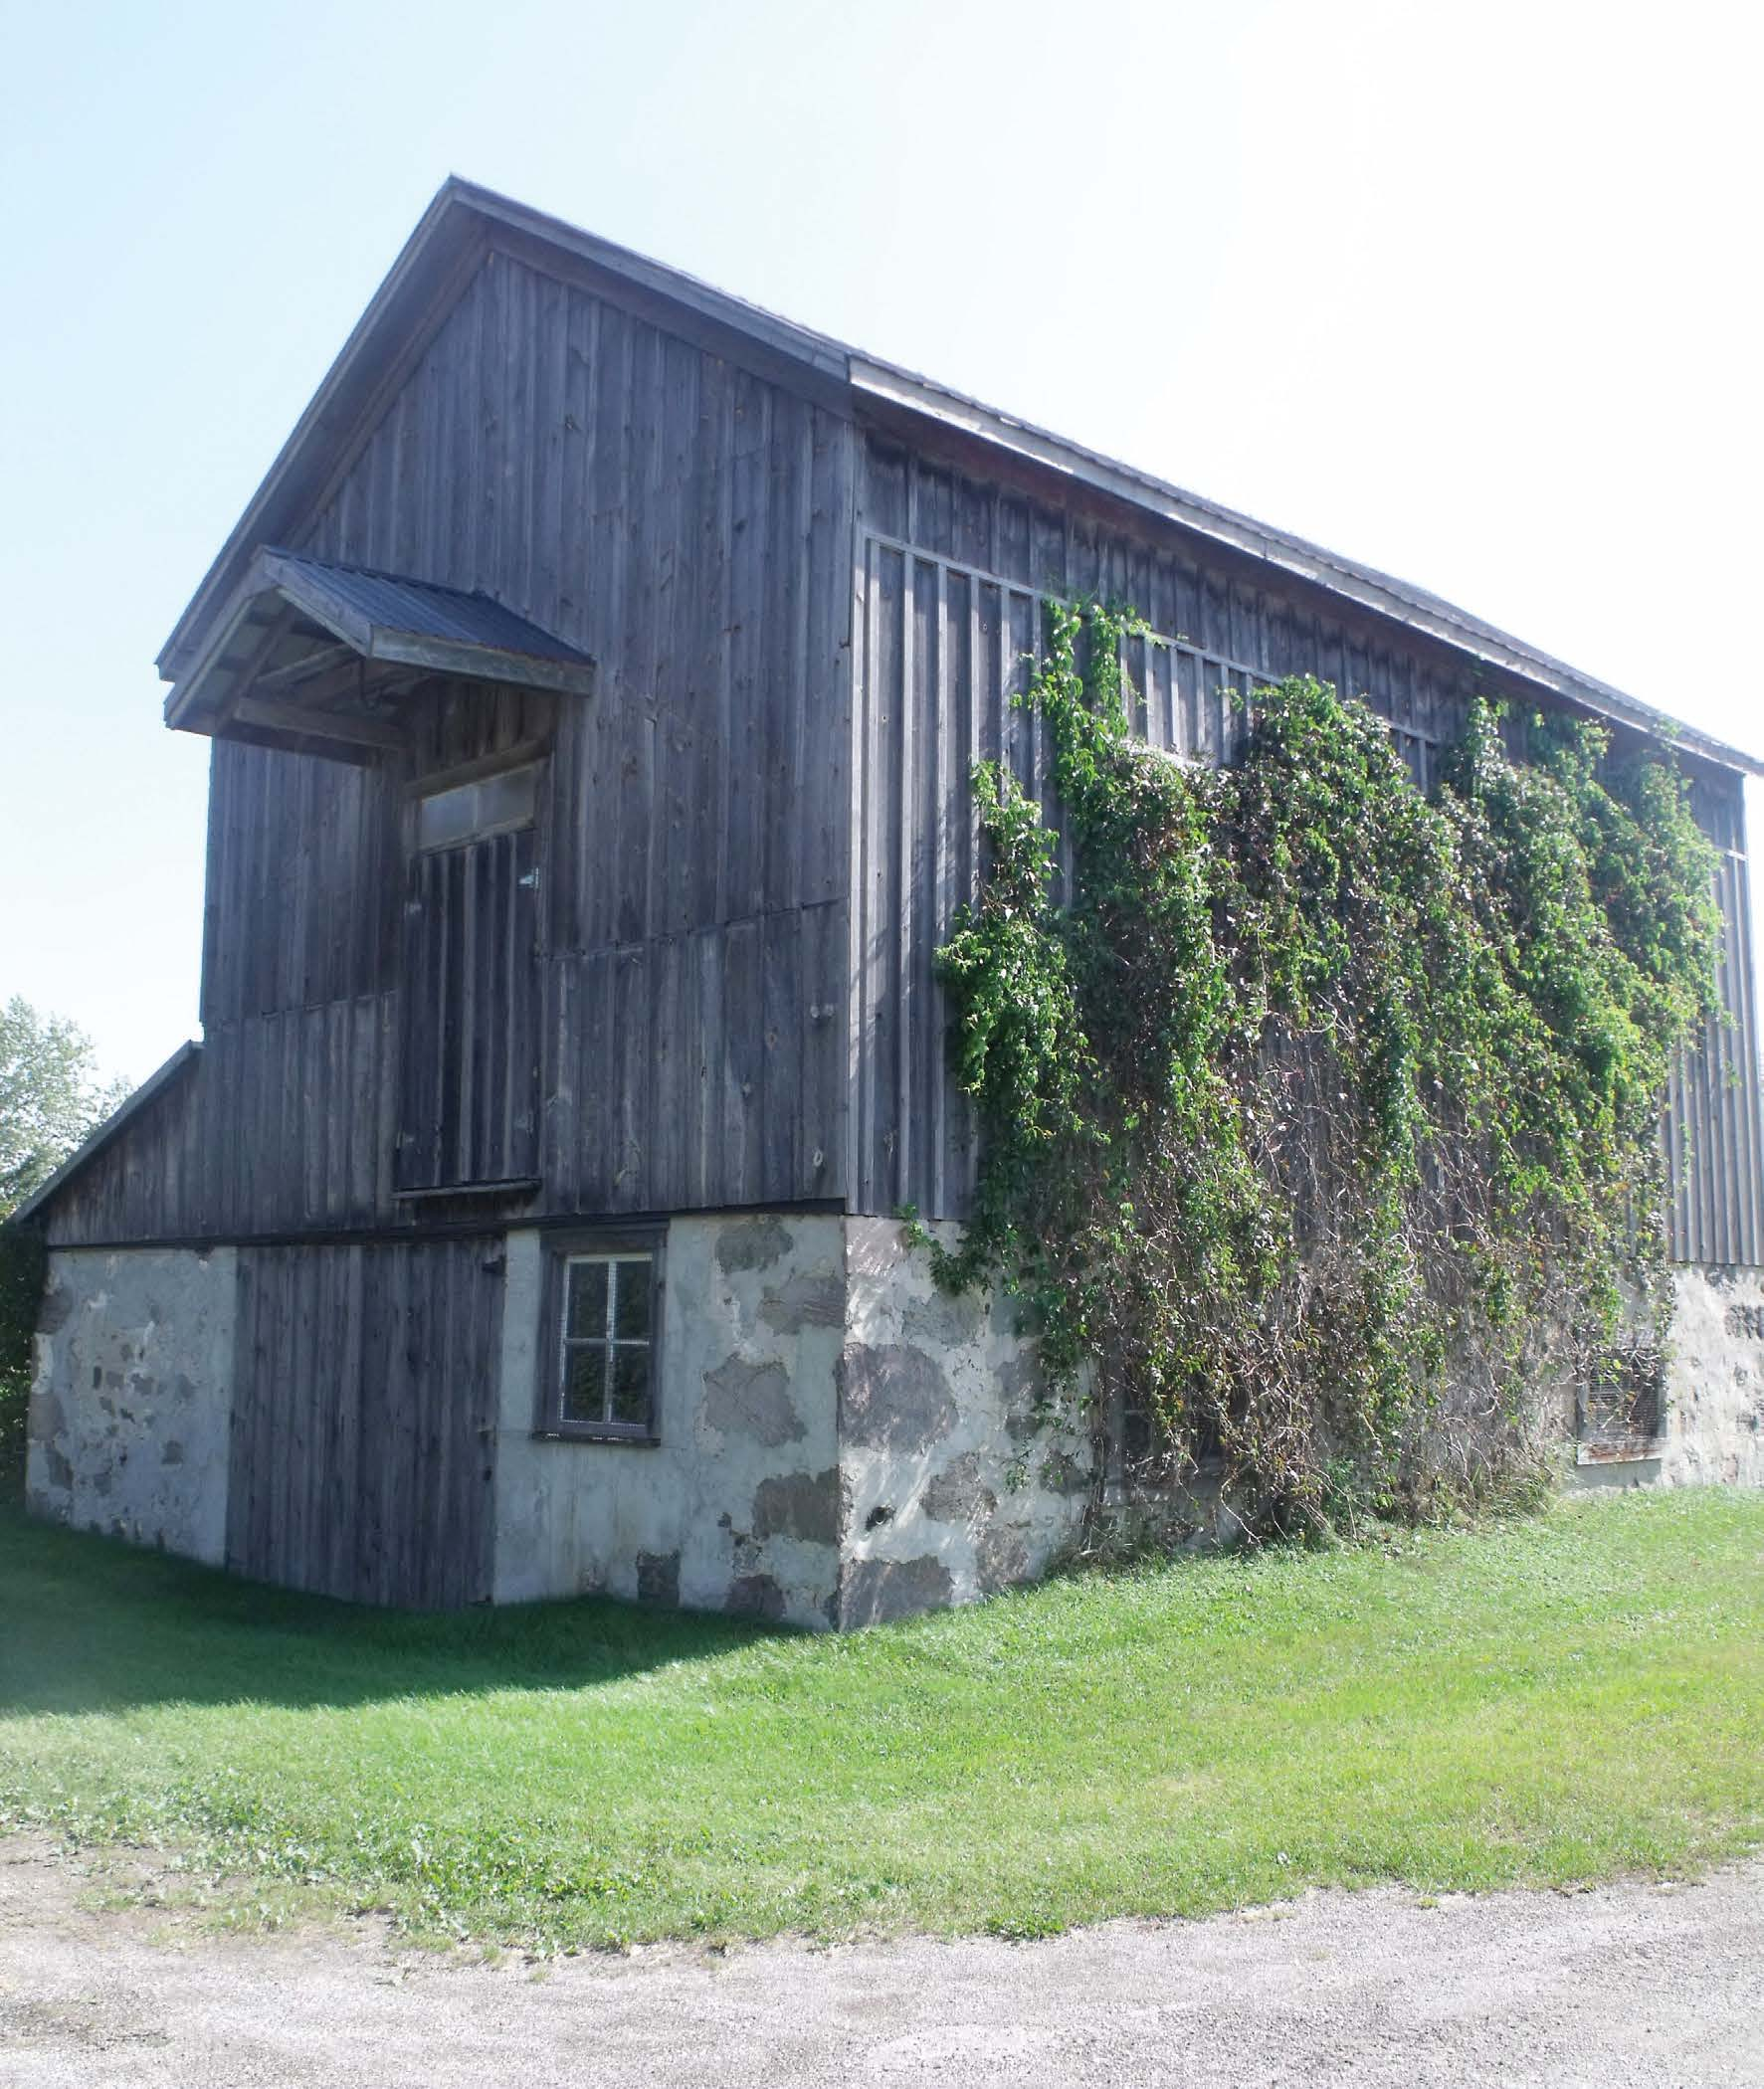 This barn-like structure (above) in Drayton was once used as a community hall or municipal building, owner Floyd Scheick believes.